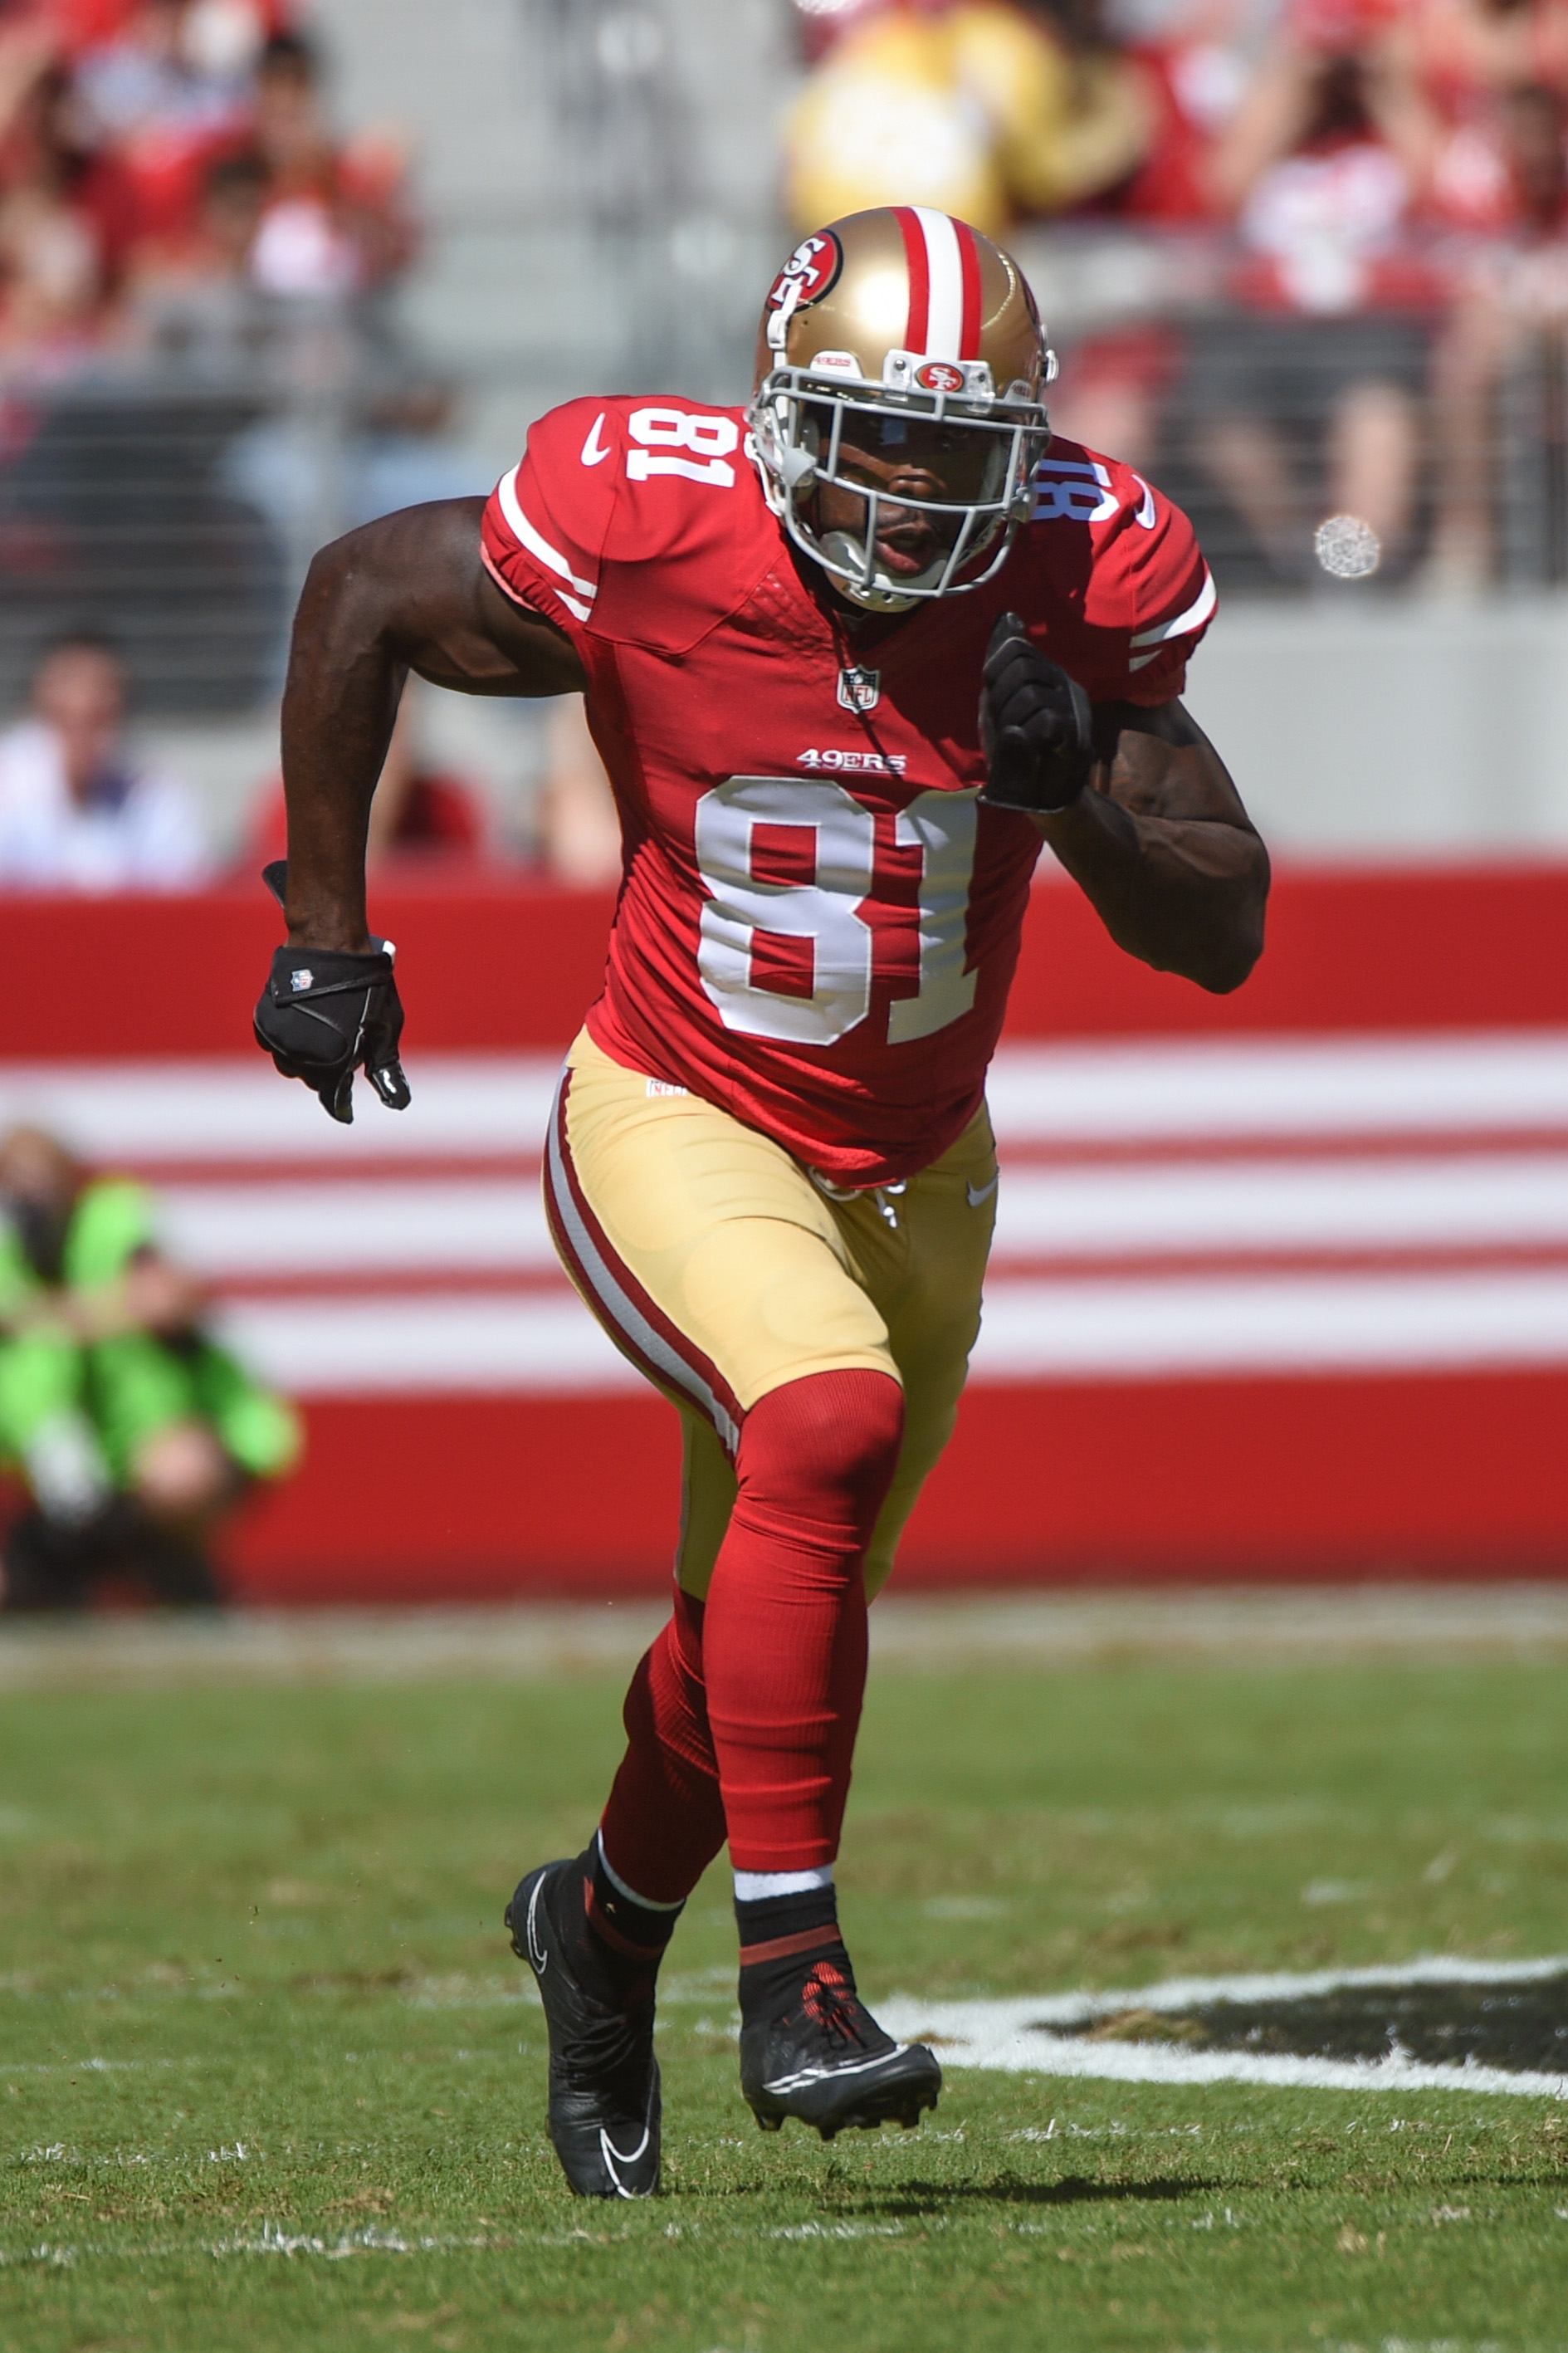 49ers, Anquan Boldin Haven't Had Contract Talks